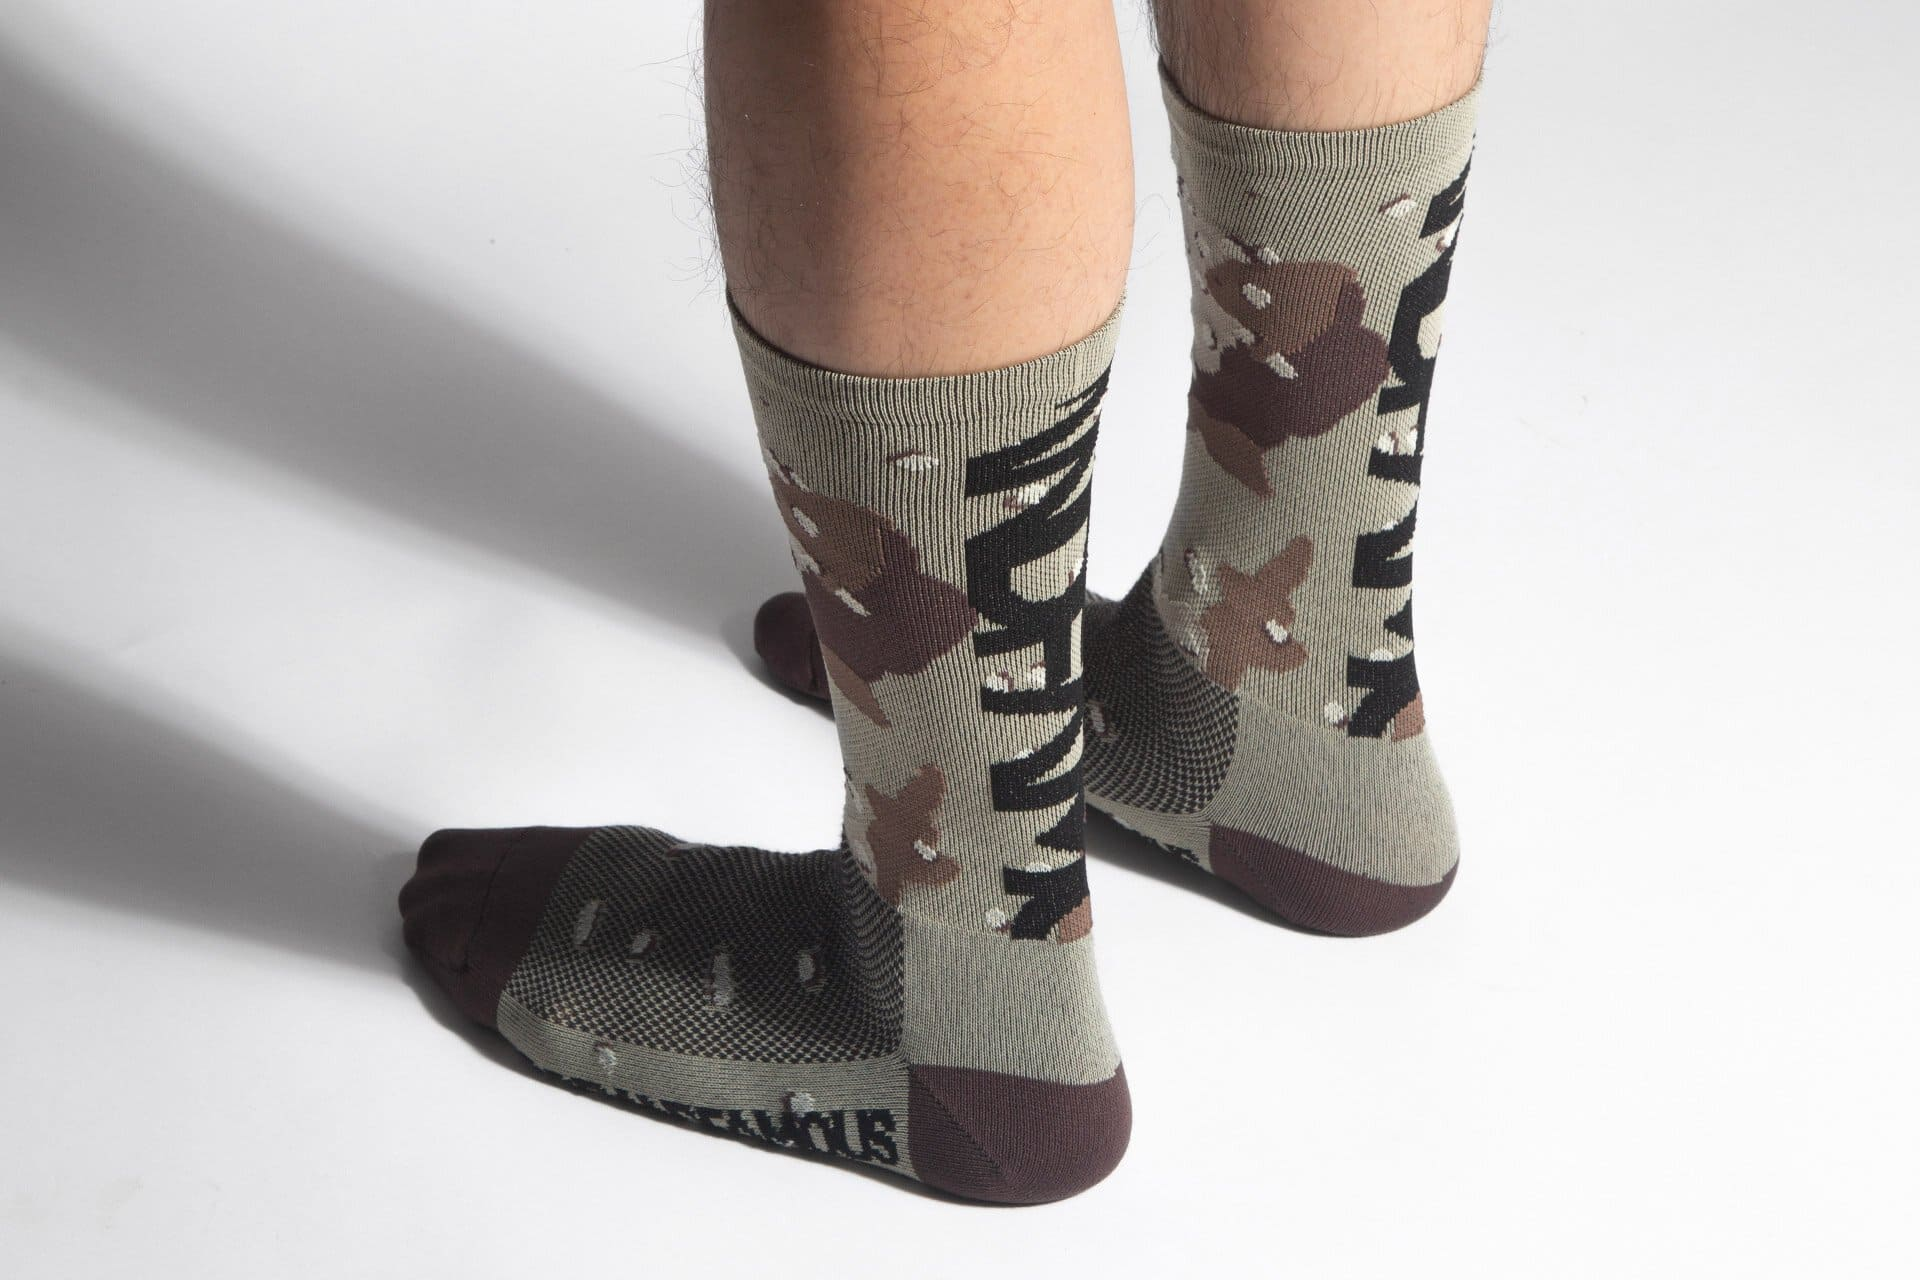 GOD & FAMOUS Dirt Church Socks